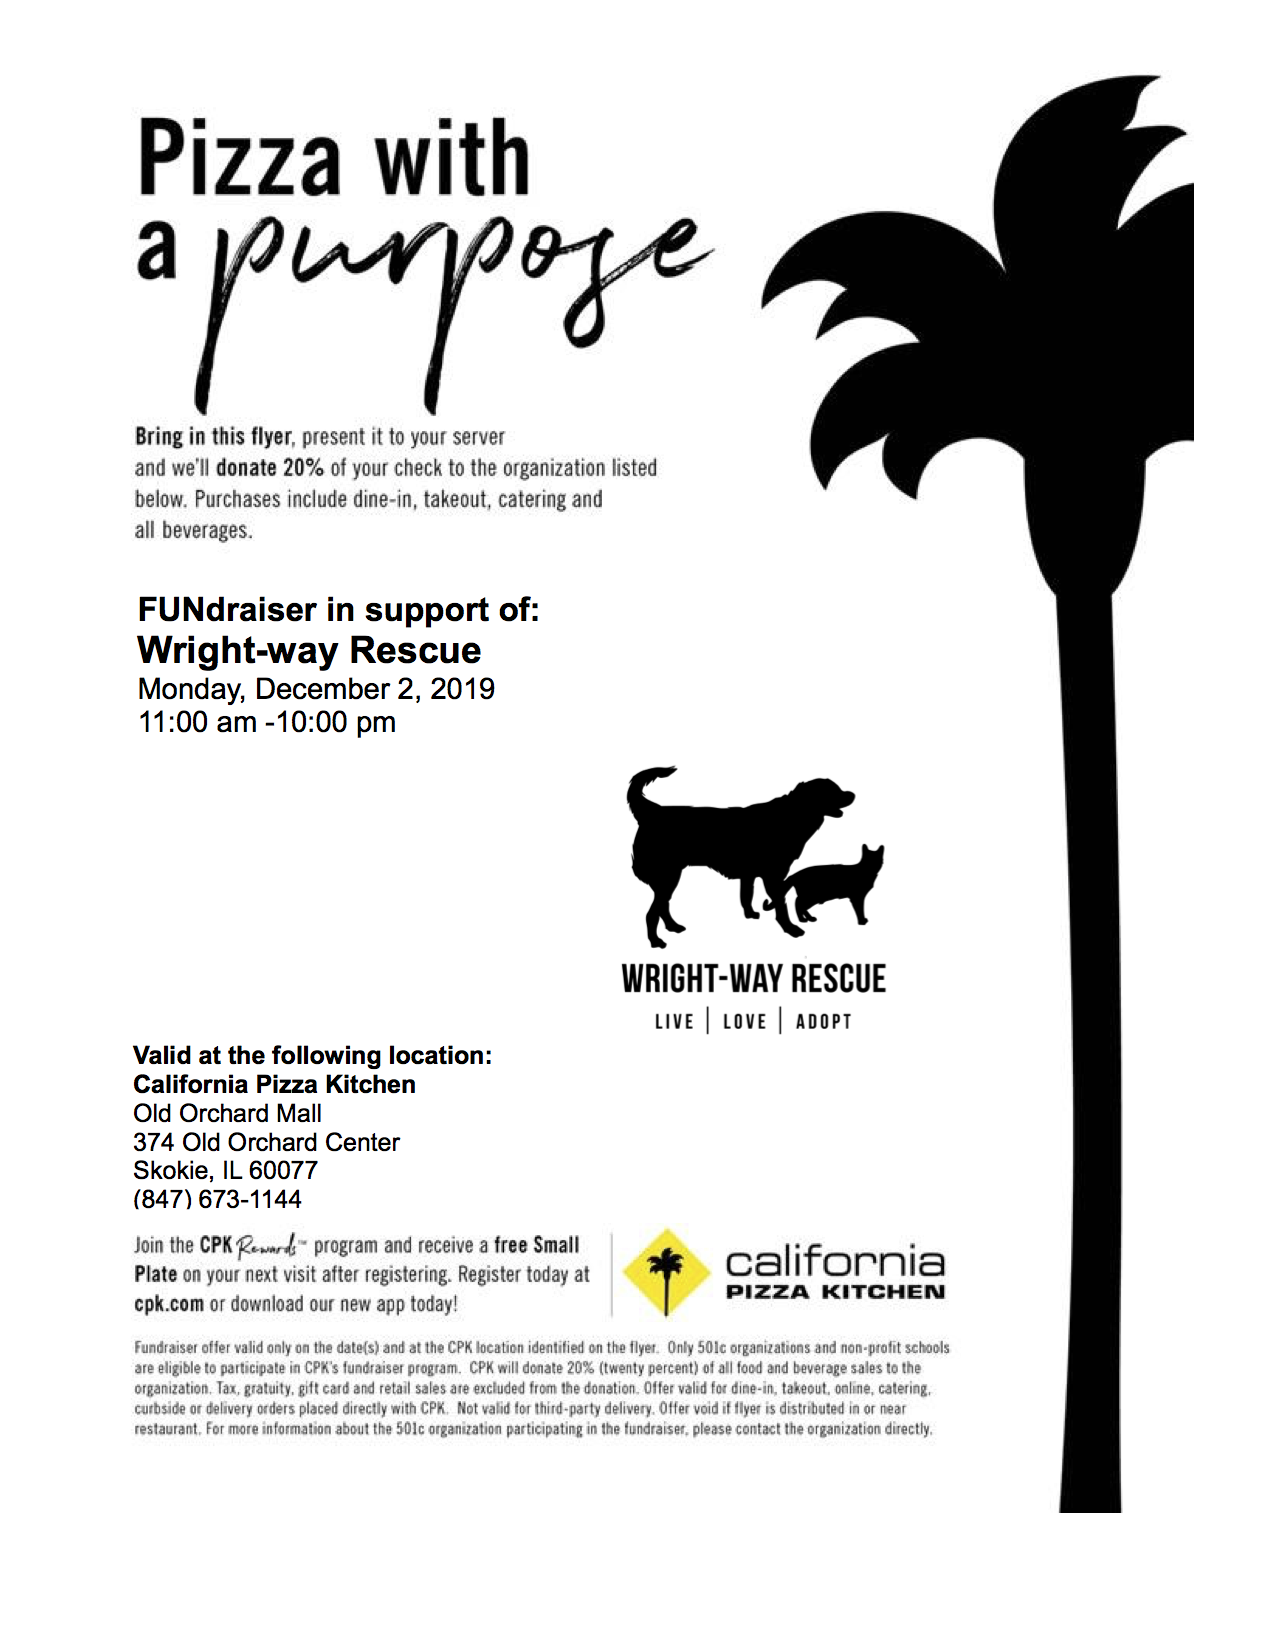 CPK FUNdraiser Flyer.Wright-way Rescue.12.02.2019..png